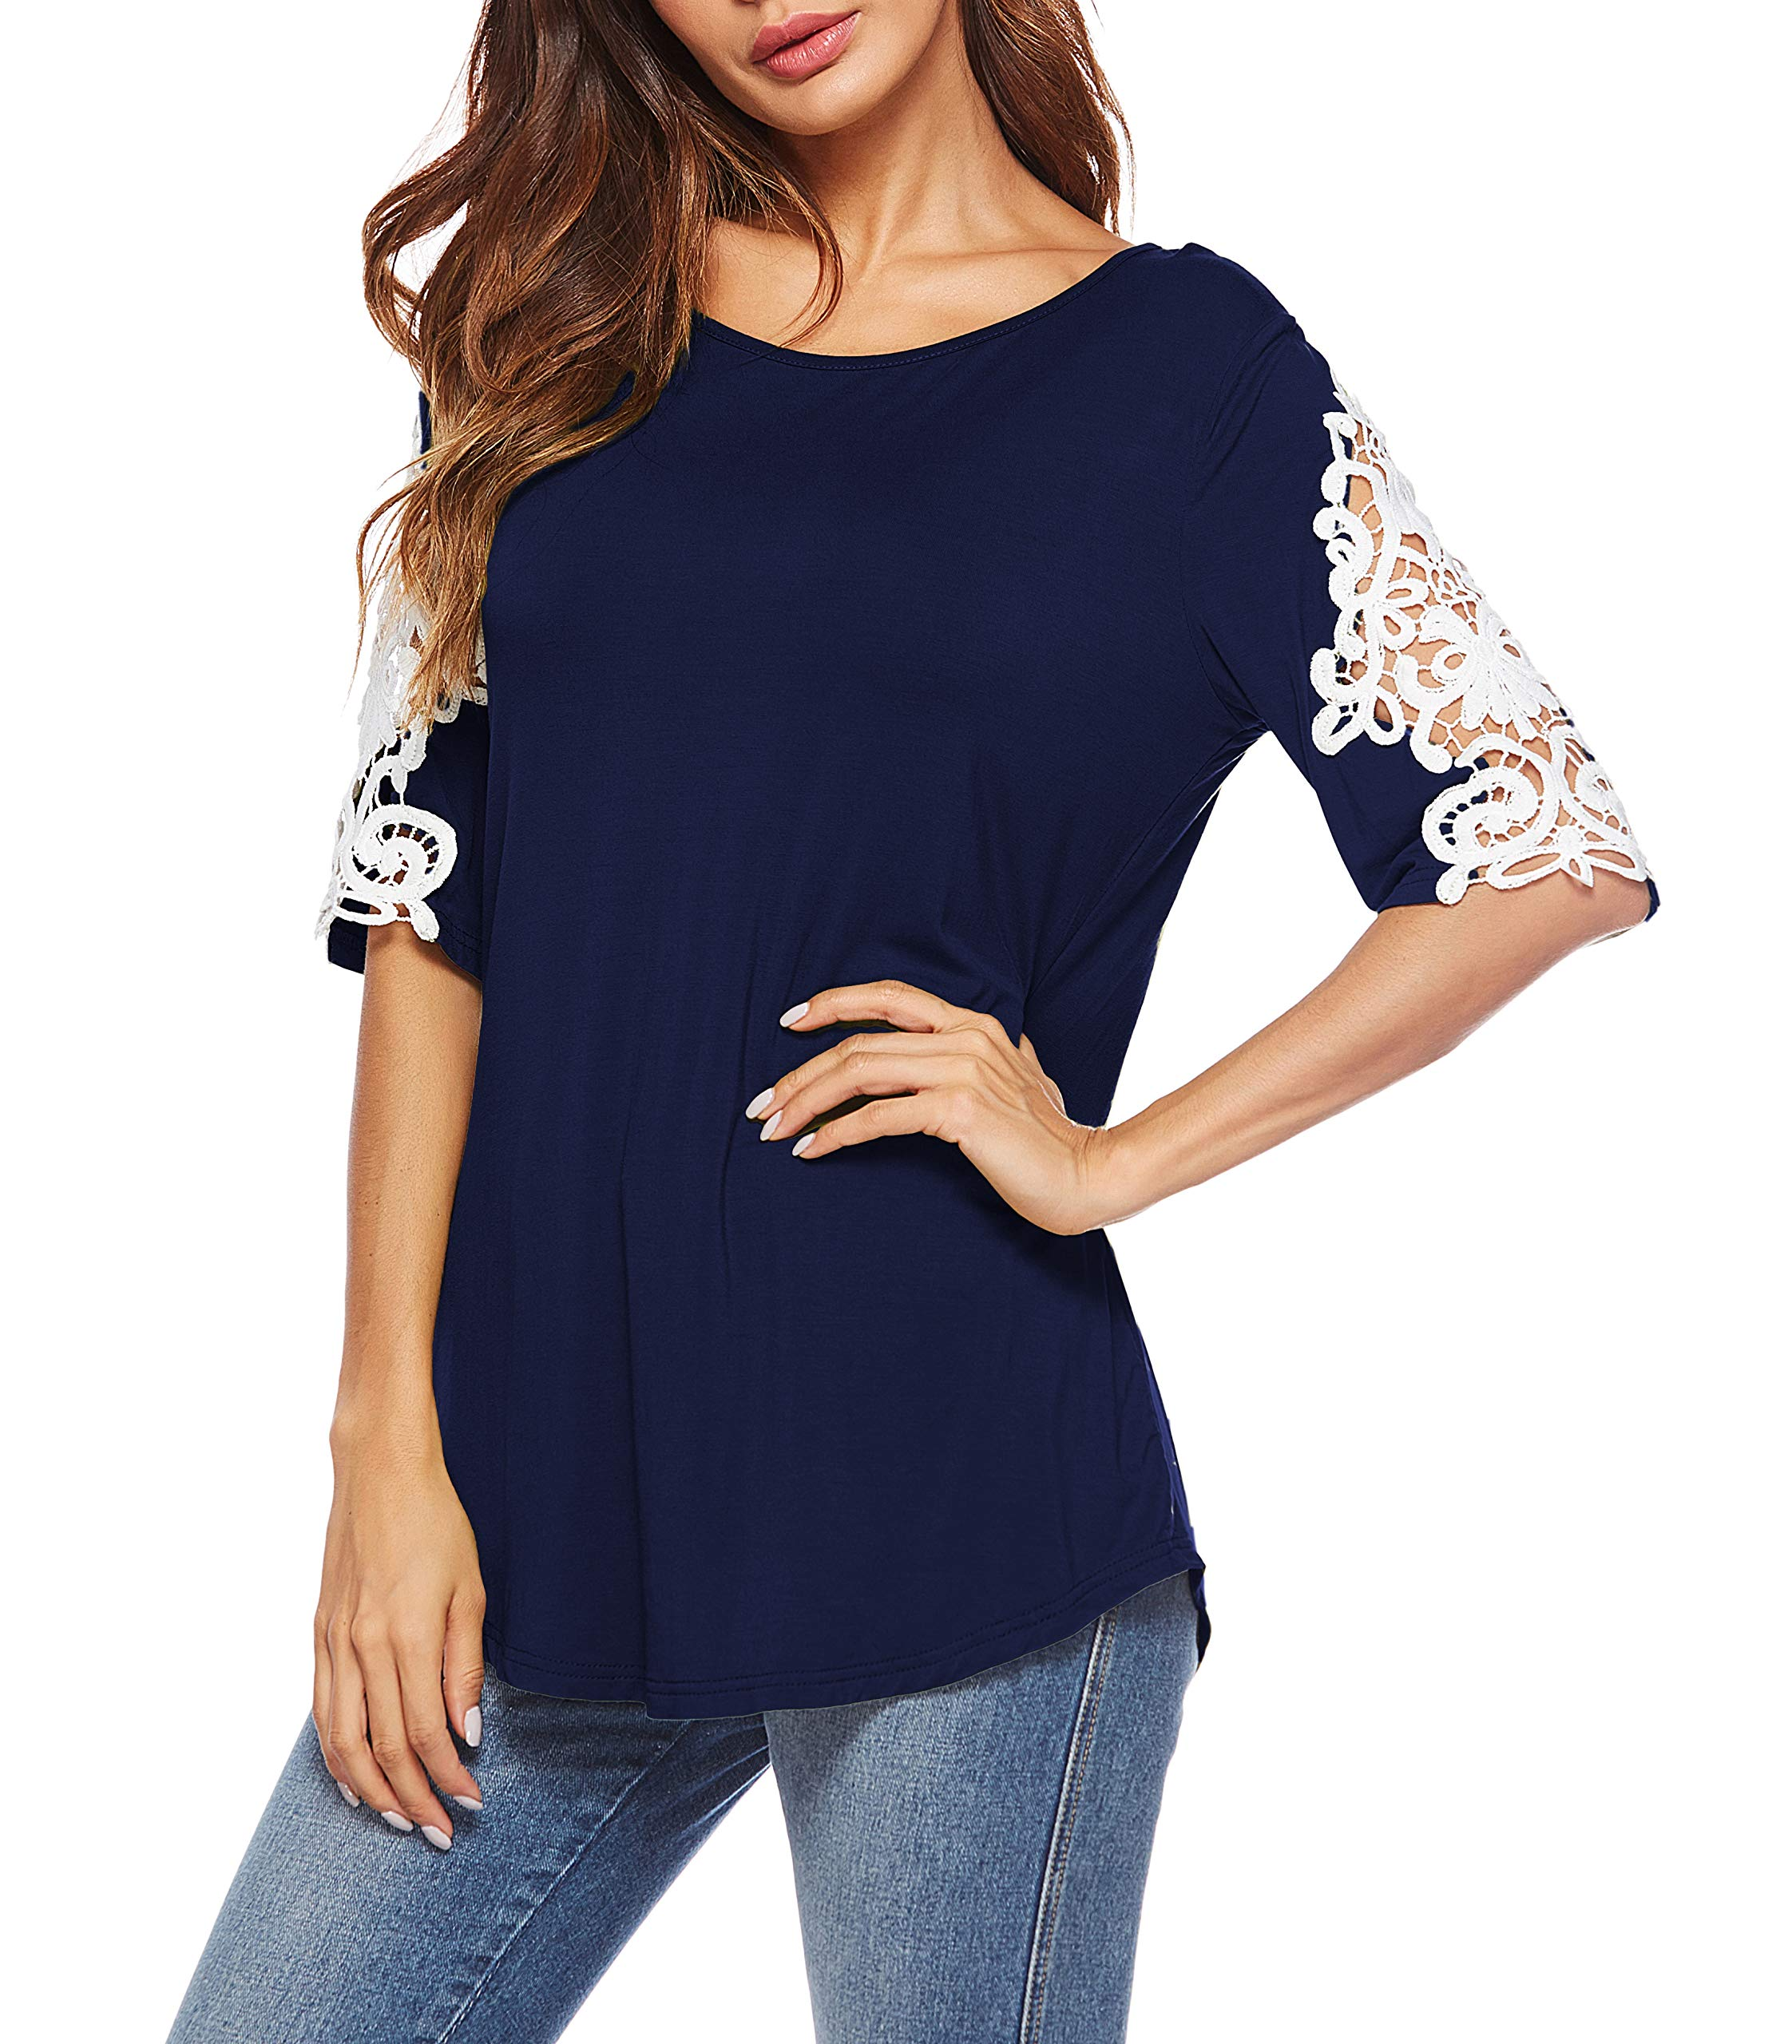 Oyanus Womens Shirts Casual Tee Round Neck Short Sleeve Lace Tunic Tops Blouses Navy L by Oyanus